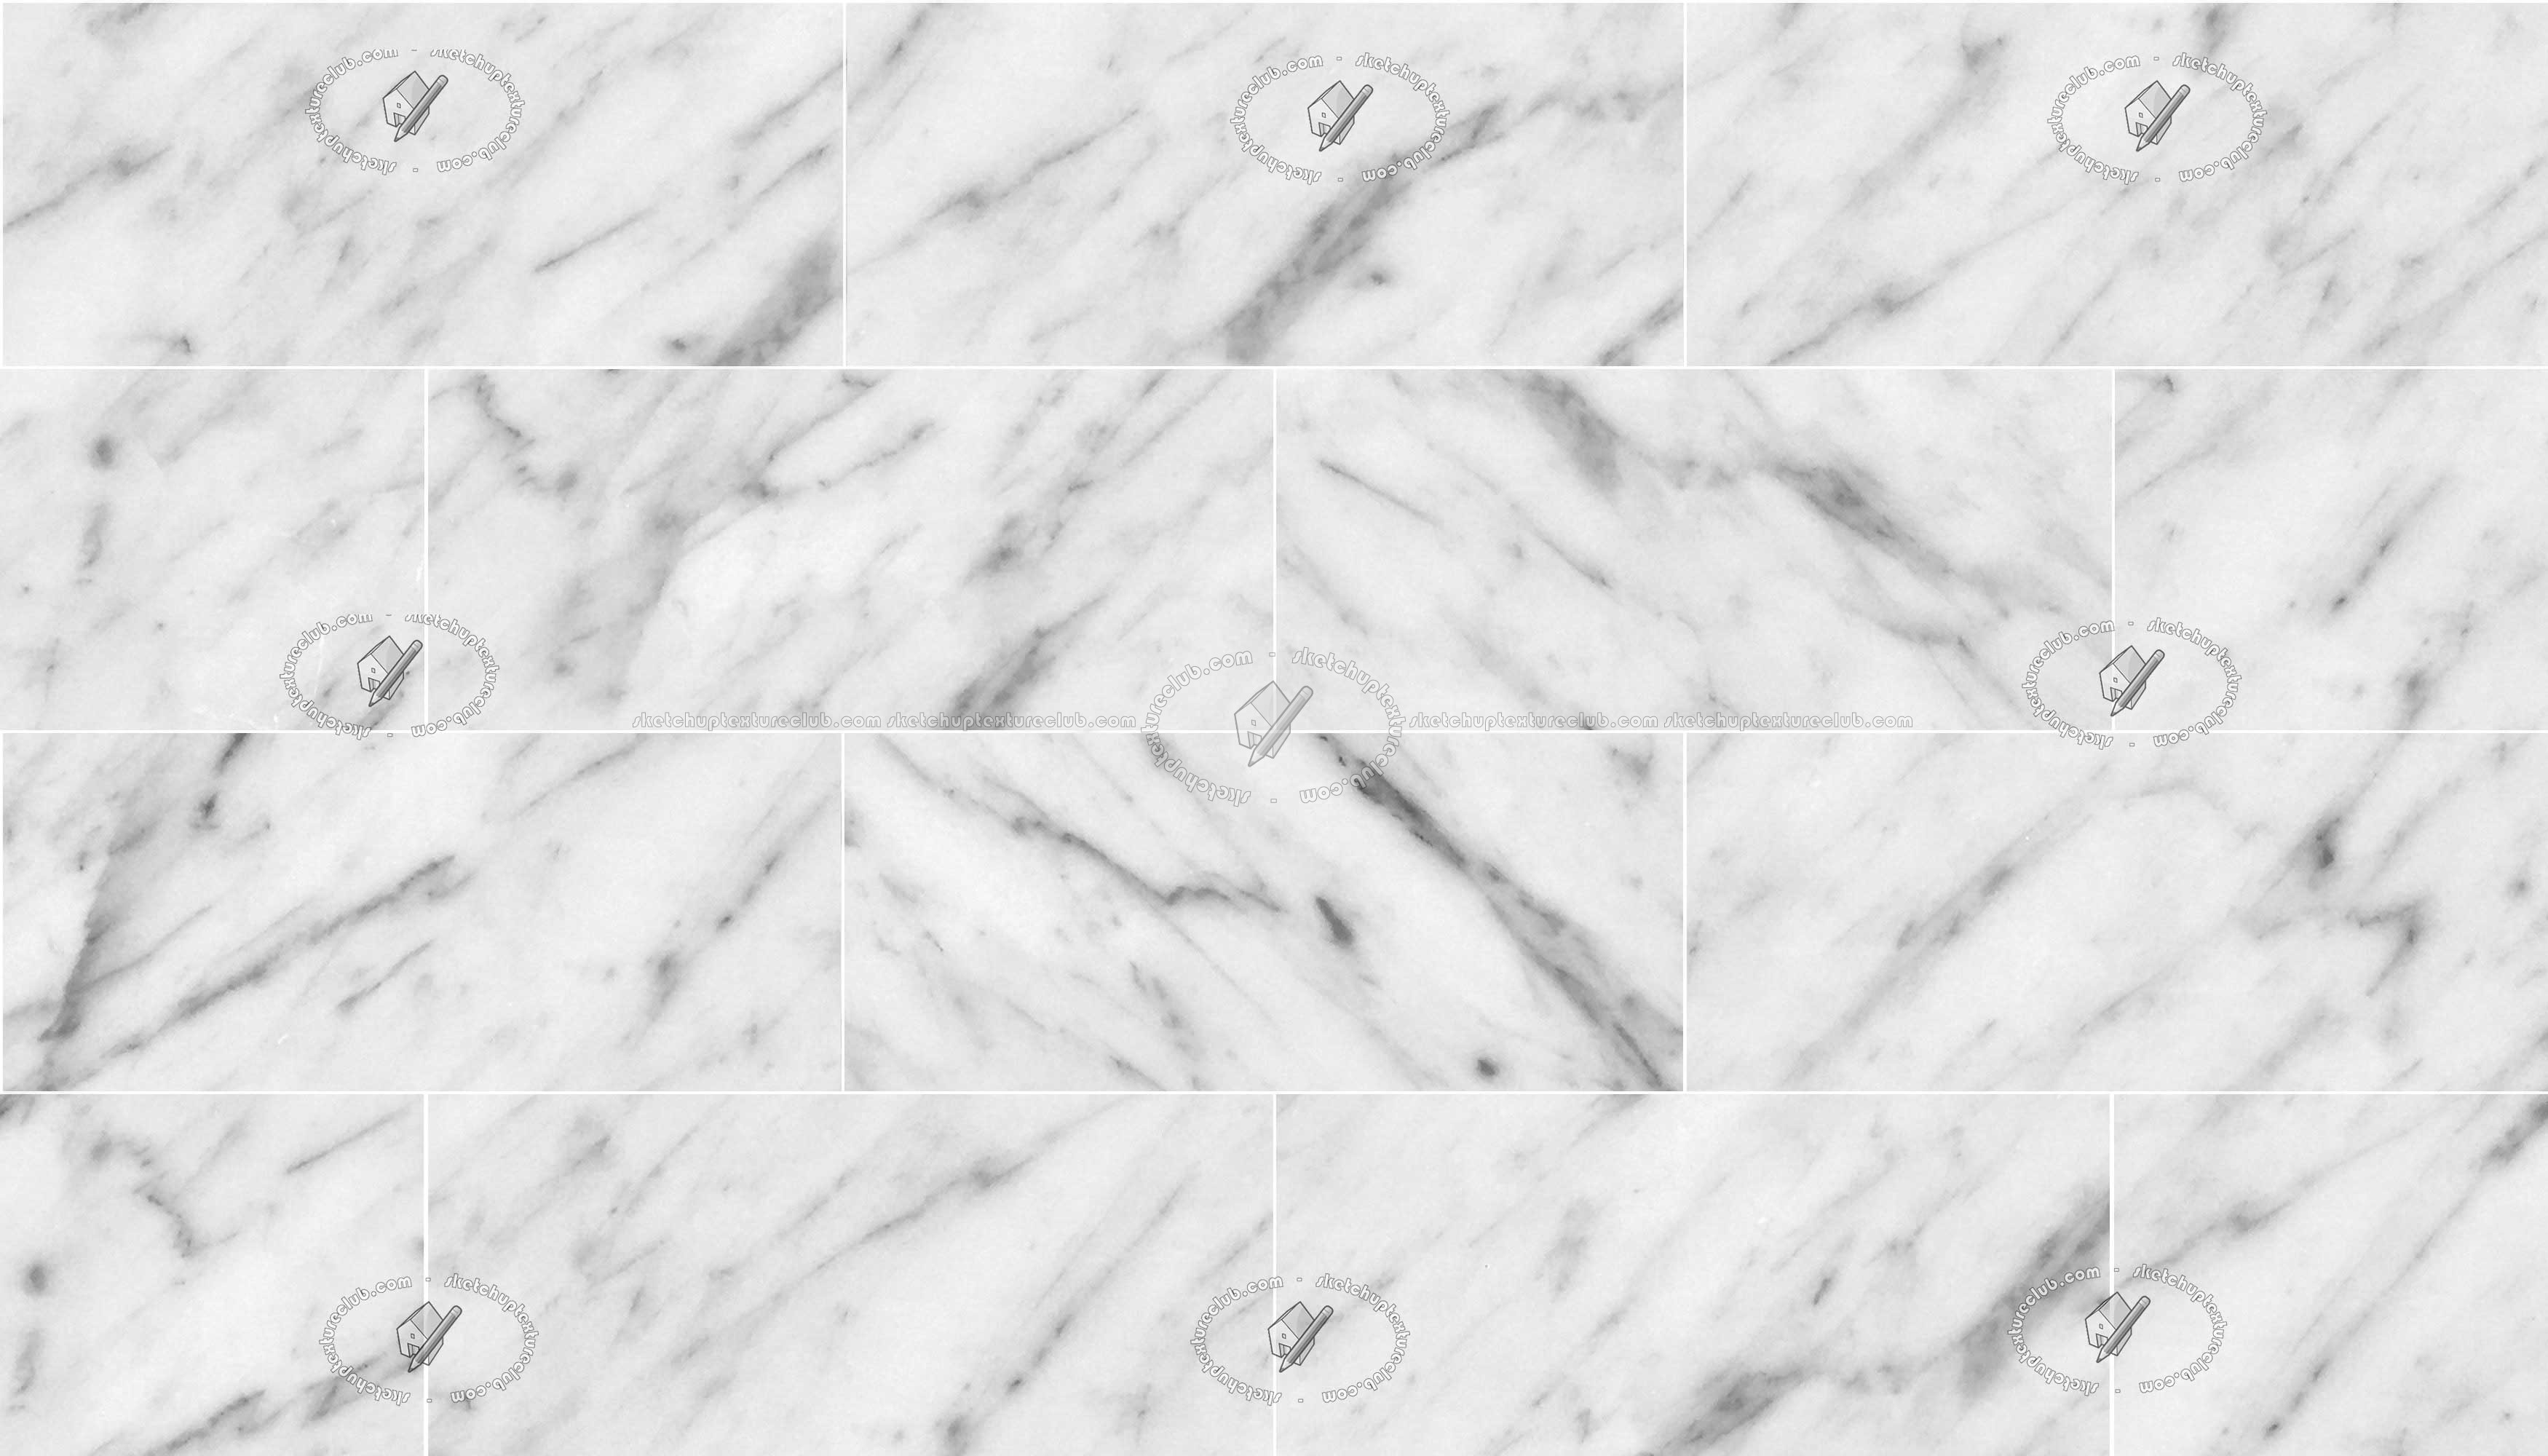 Wallpaper Black And White Damask Carrara White Marble Tile Veined Texture Seamless 20918